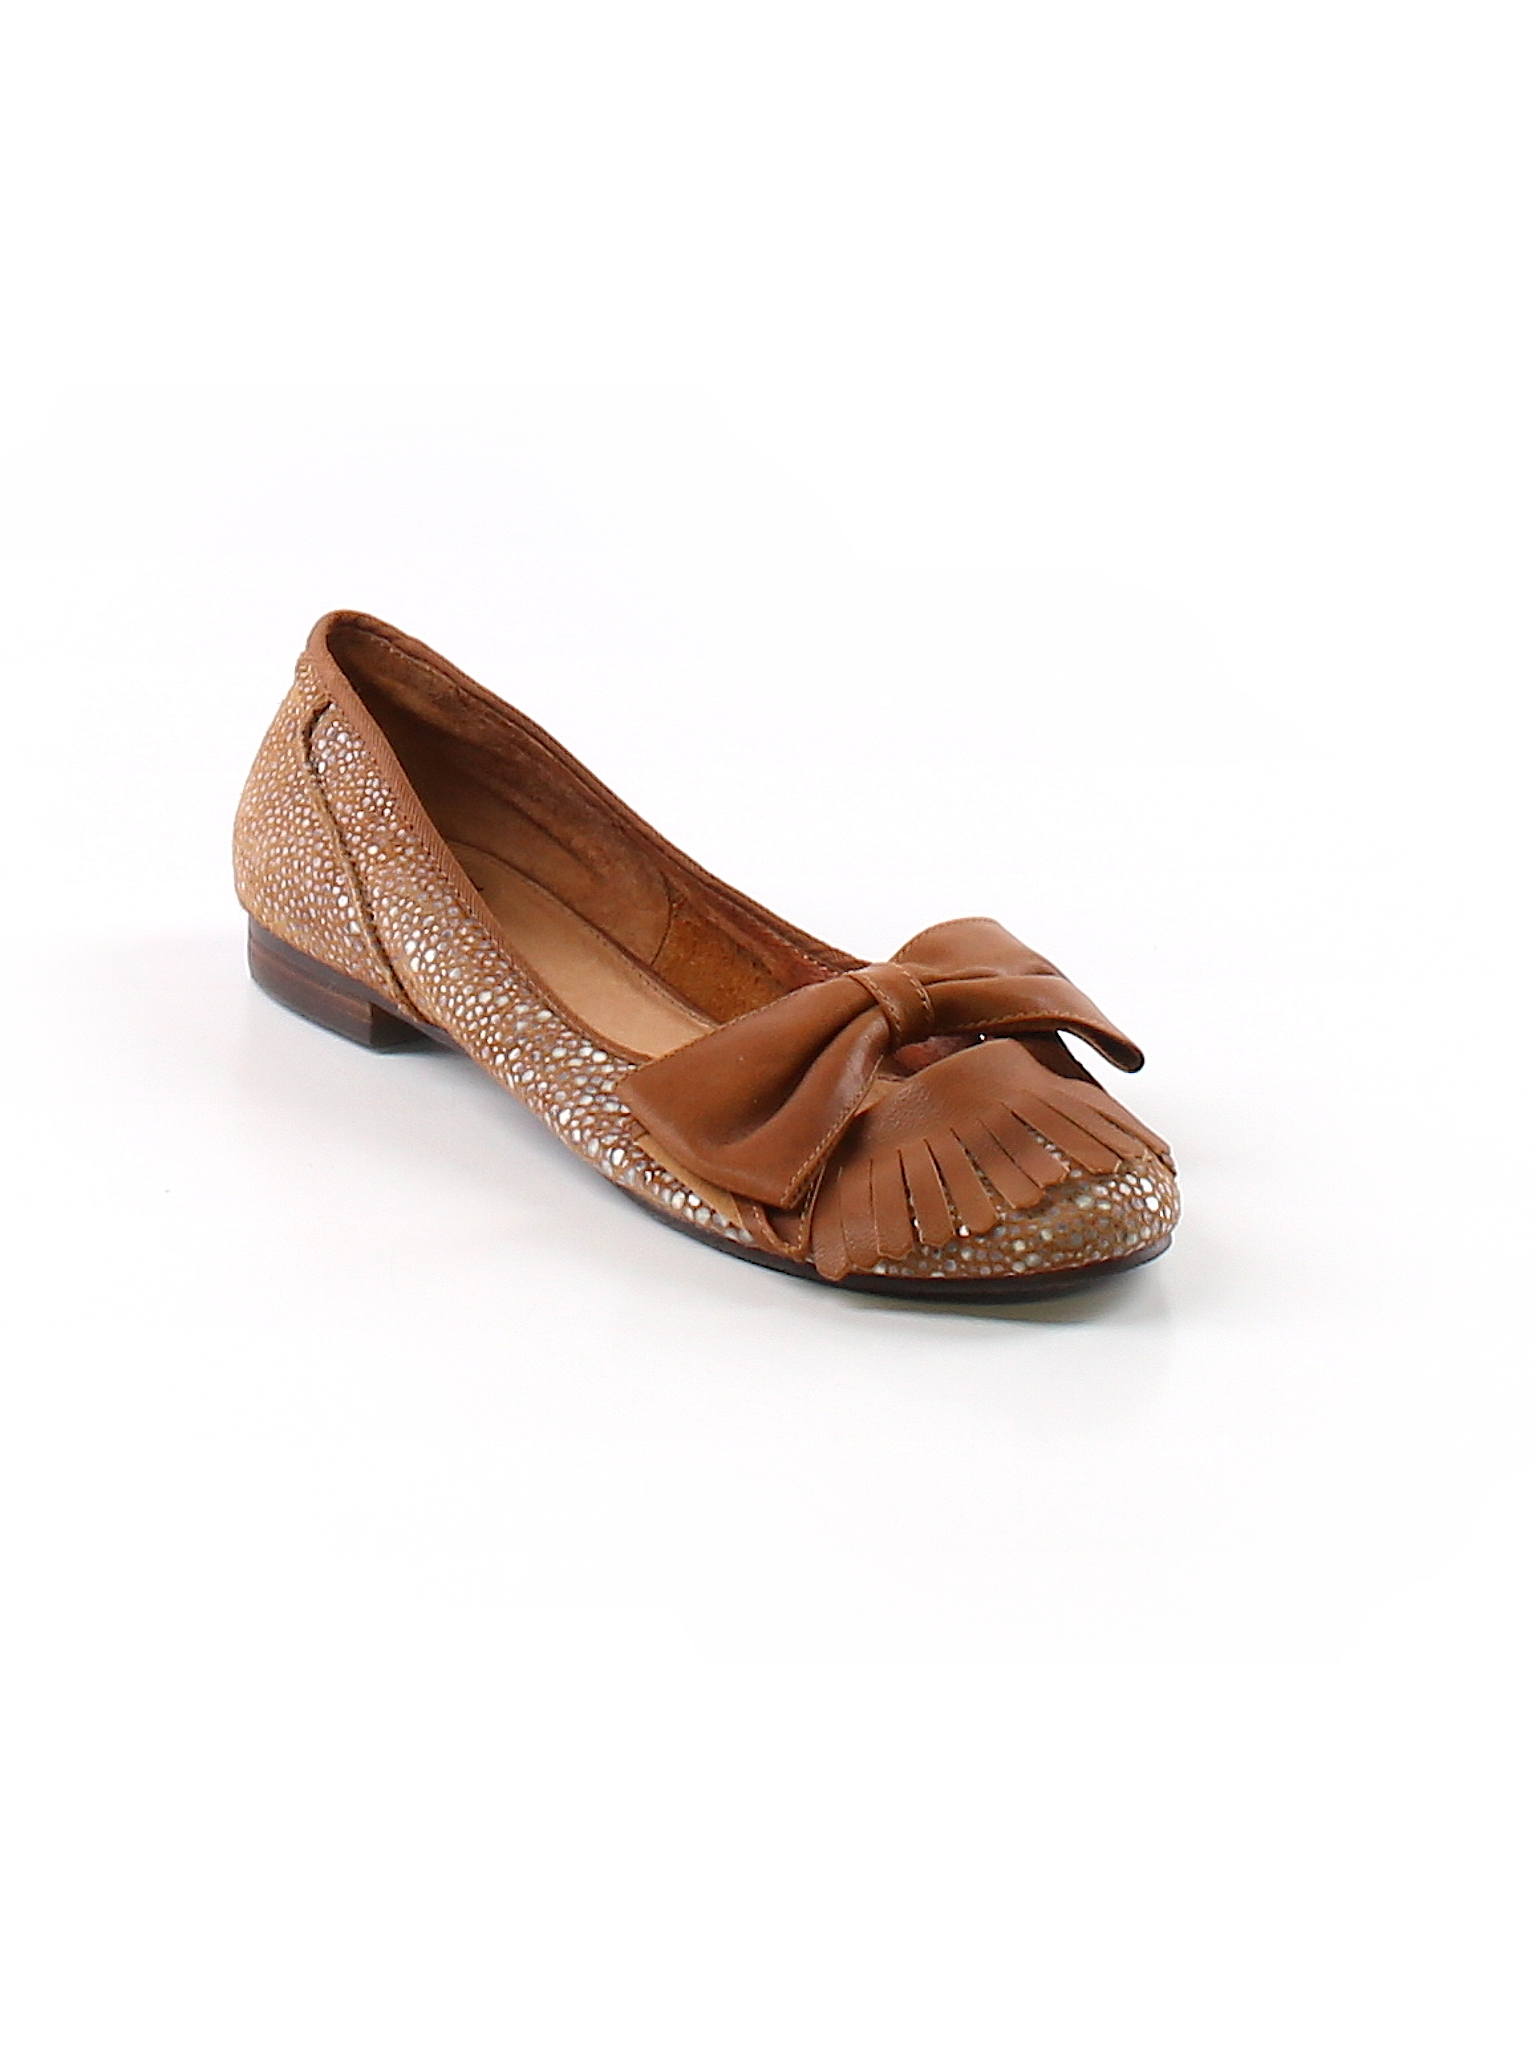 dcfee6996bf Flats | Products | Lucky penny, Flats, Brown flats